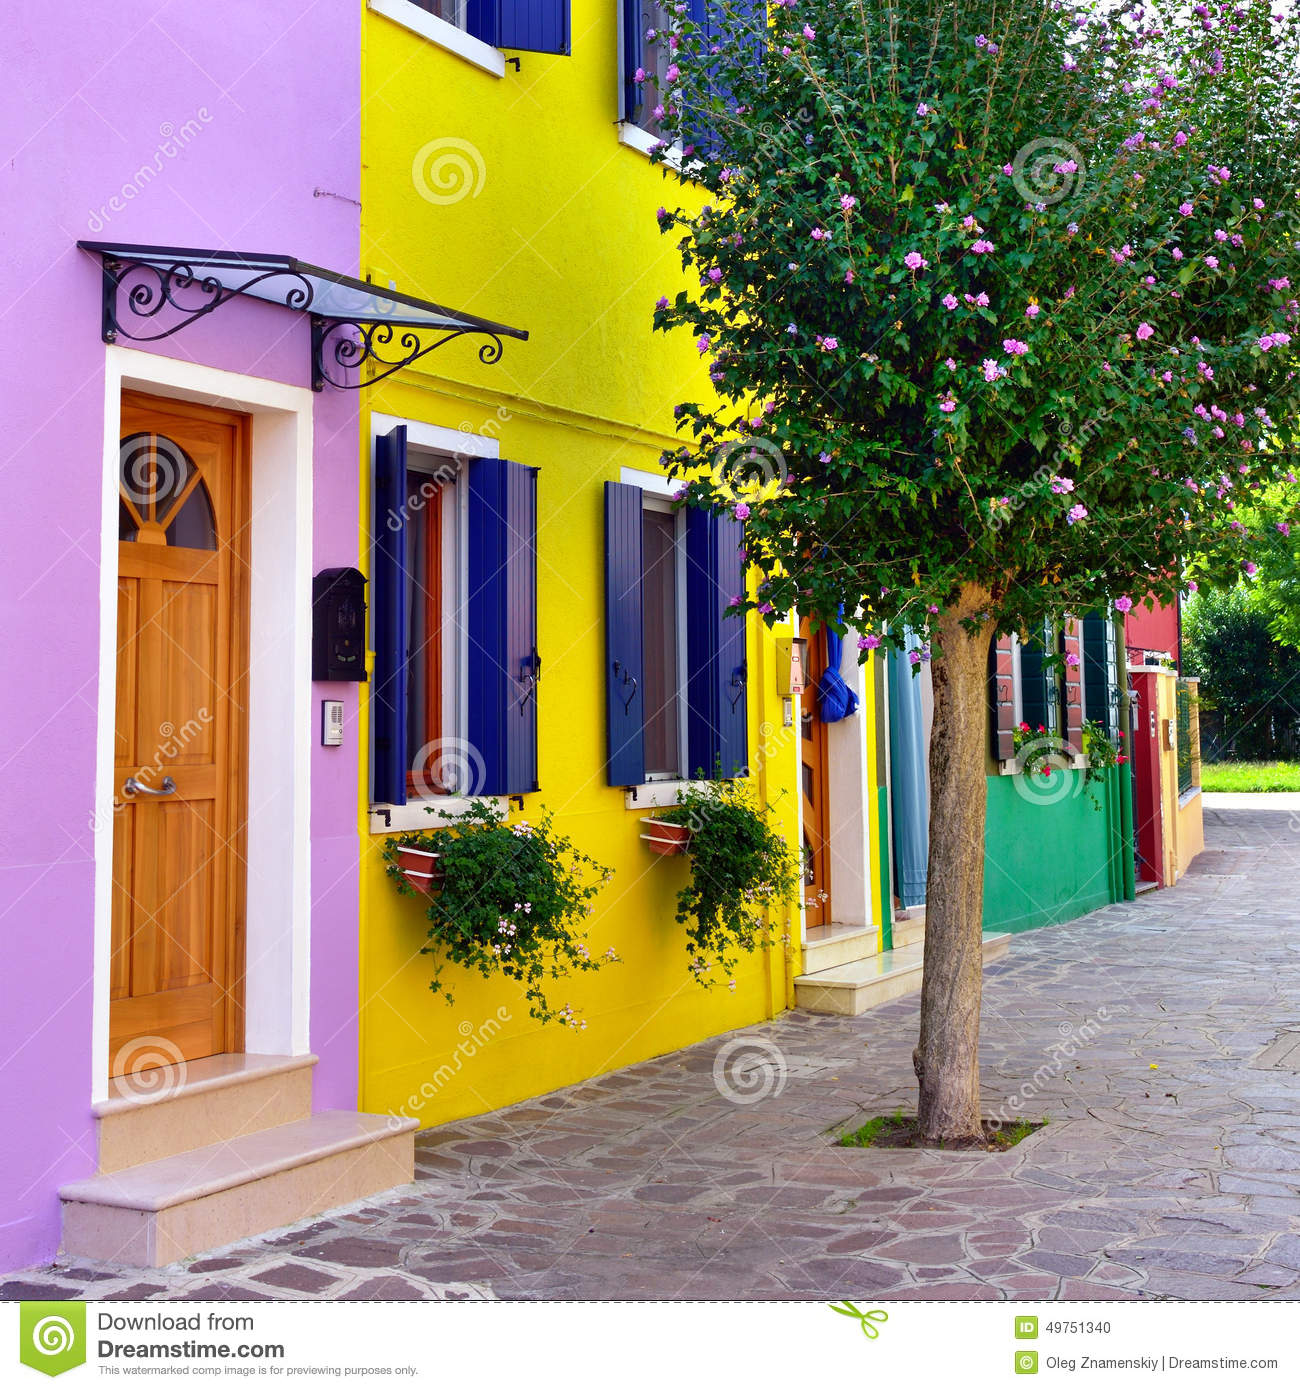 Burano island venice stock photo image 49751340 for Colorful tree house